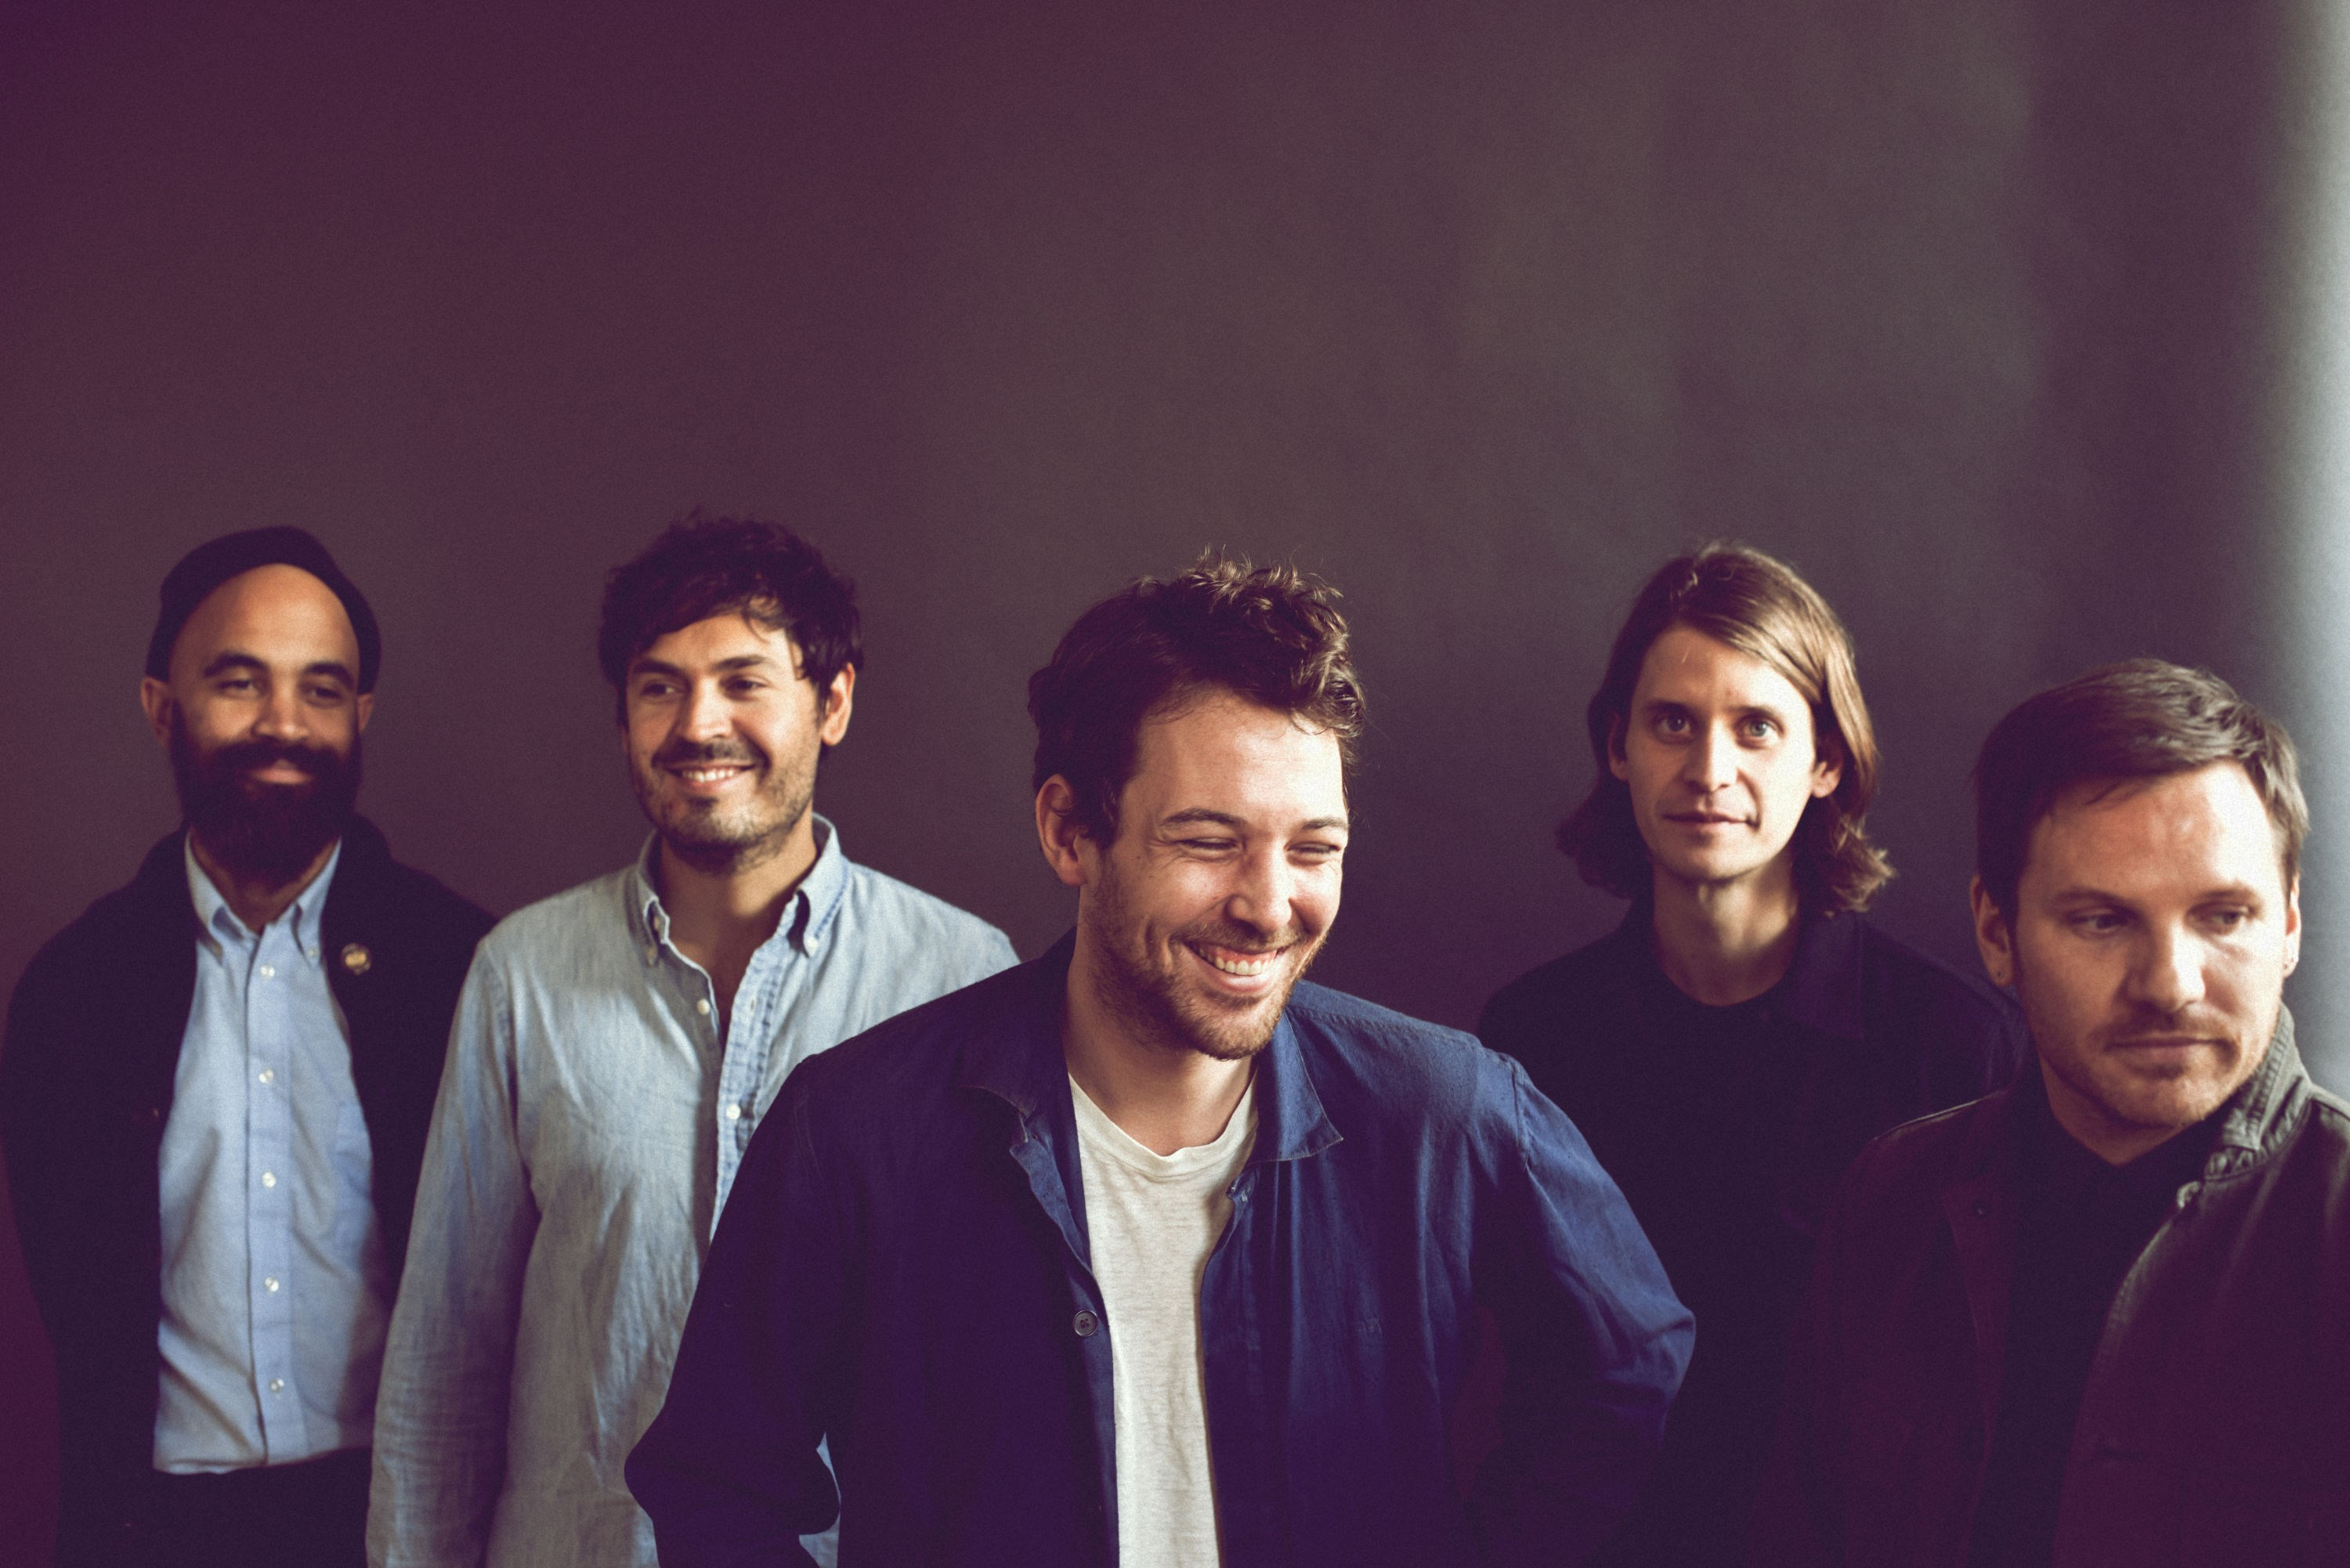 https://www.jambase.com/wp-content/uploads/2017/03/Fleet-Foxes-Press-2017.jpg